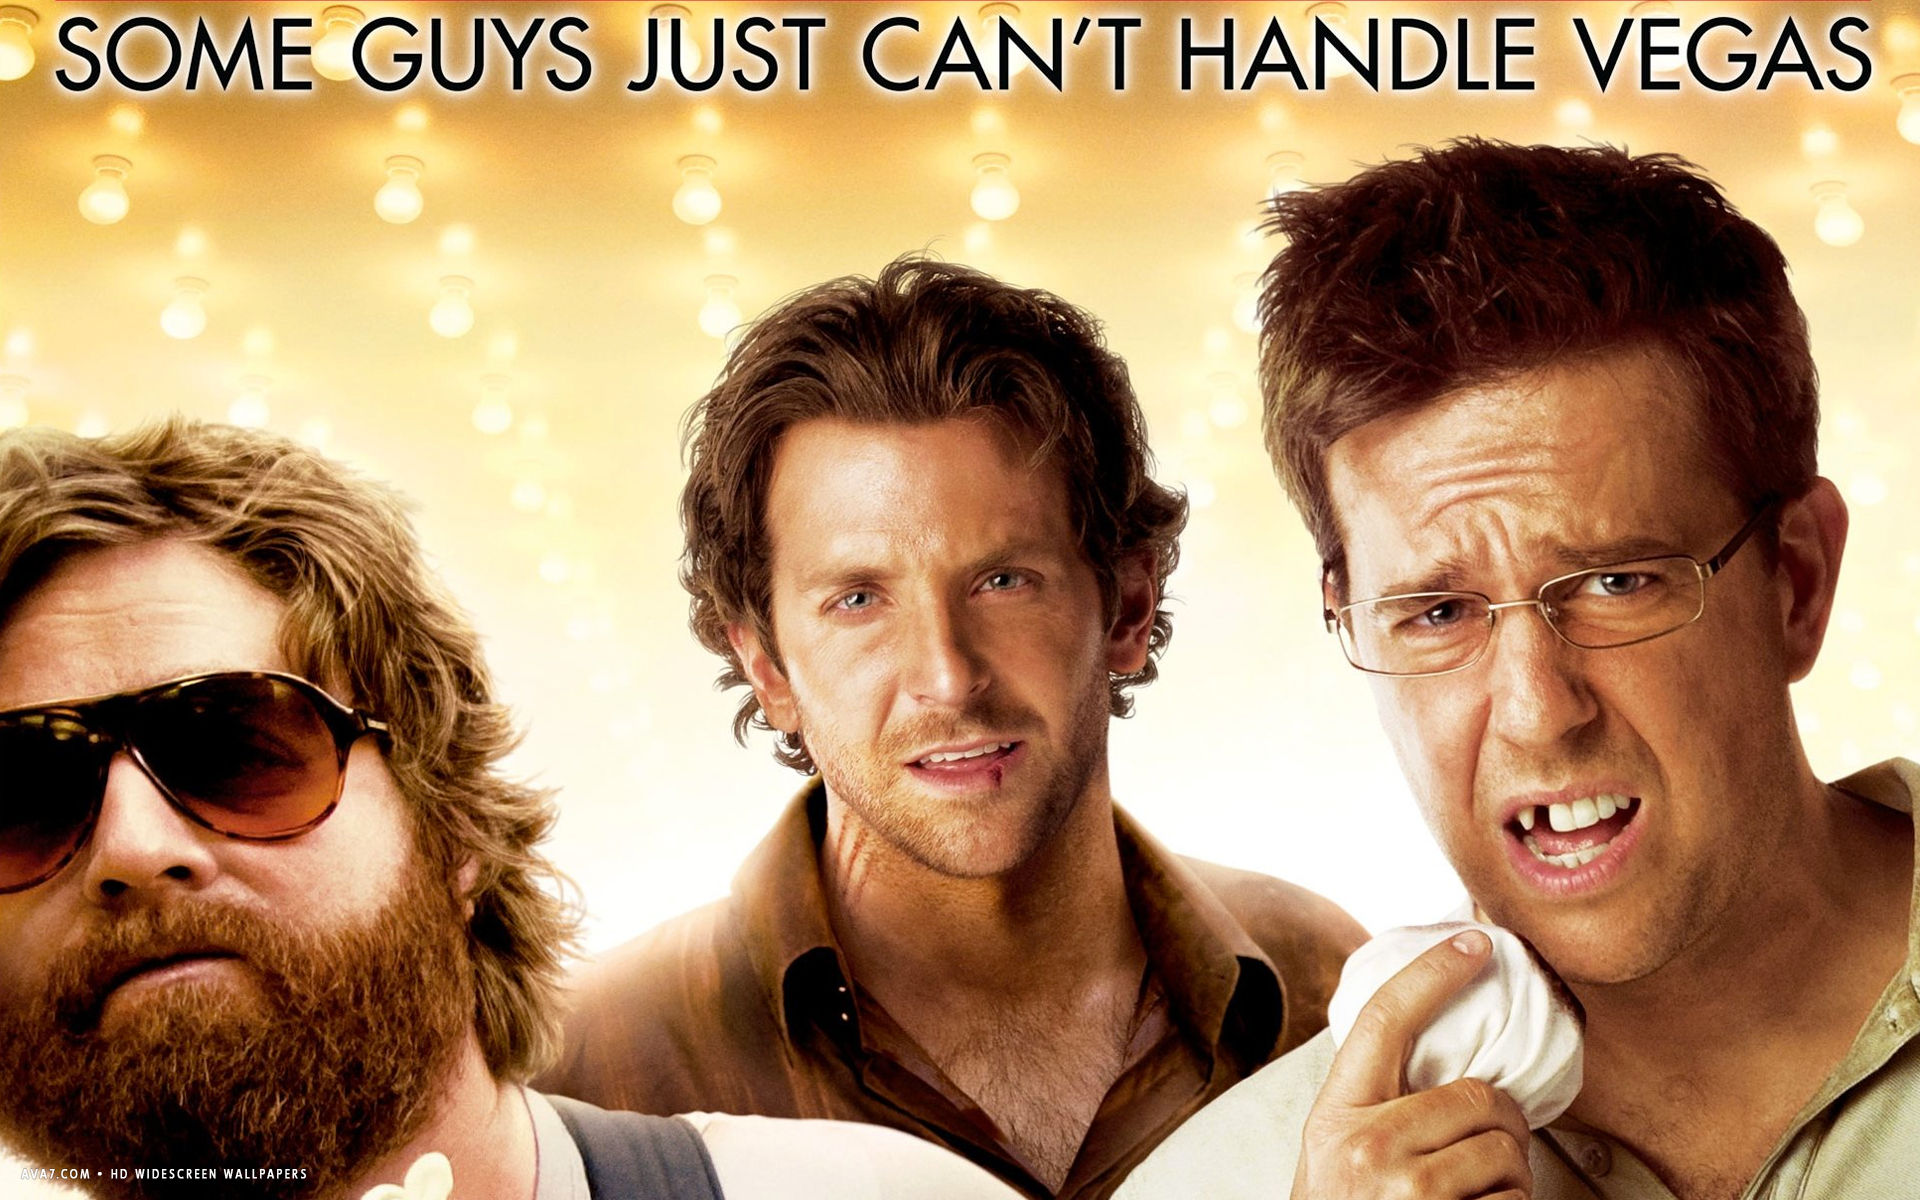 Hangover Movie Hd Widescreen Wallpaper / Movies Backgrounds